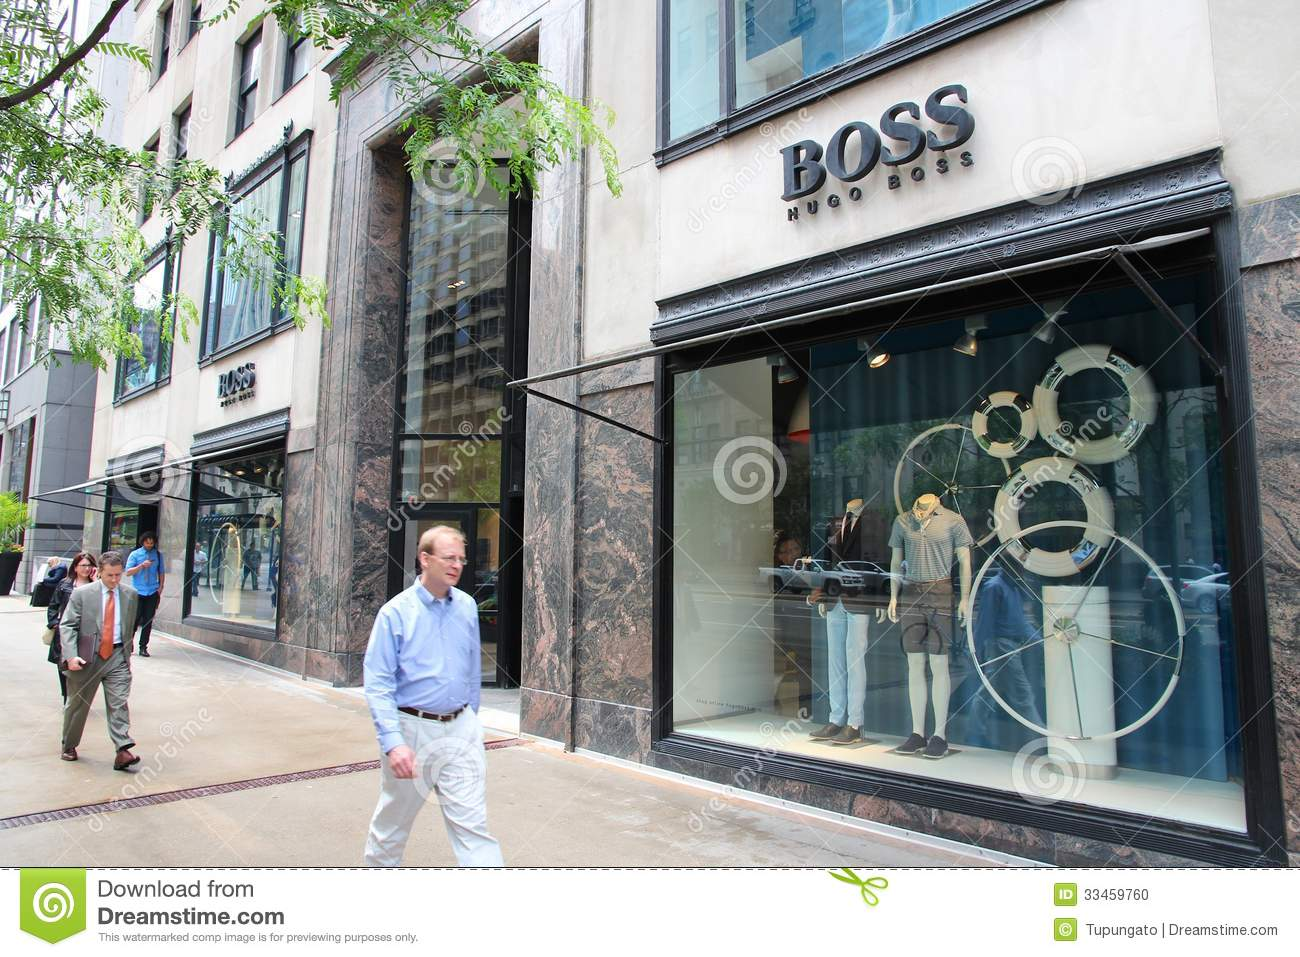 Clothing stores in downtown chicago